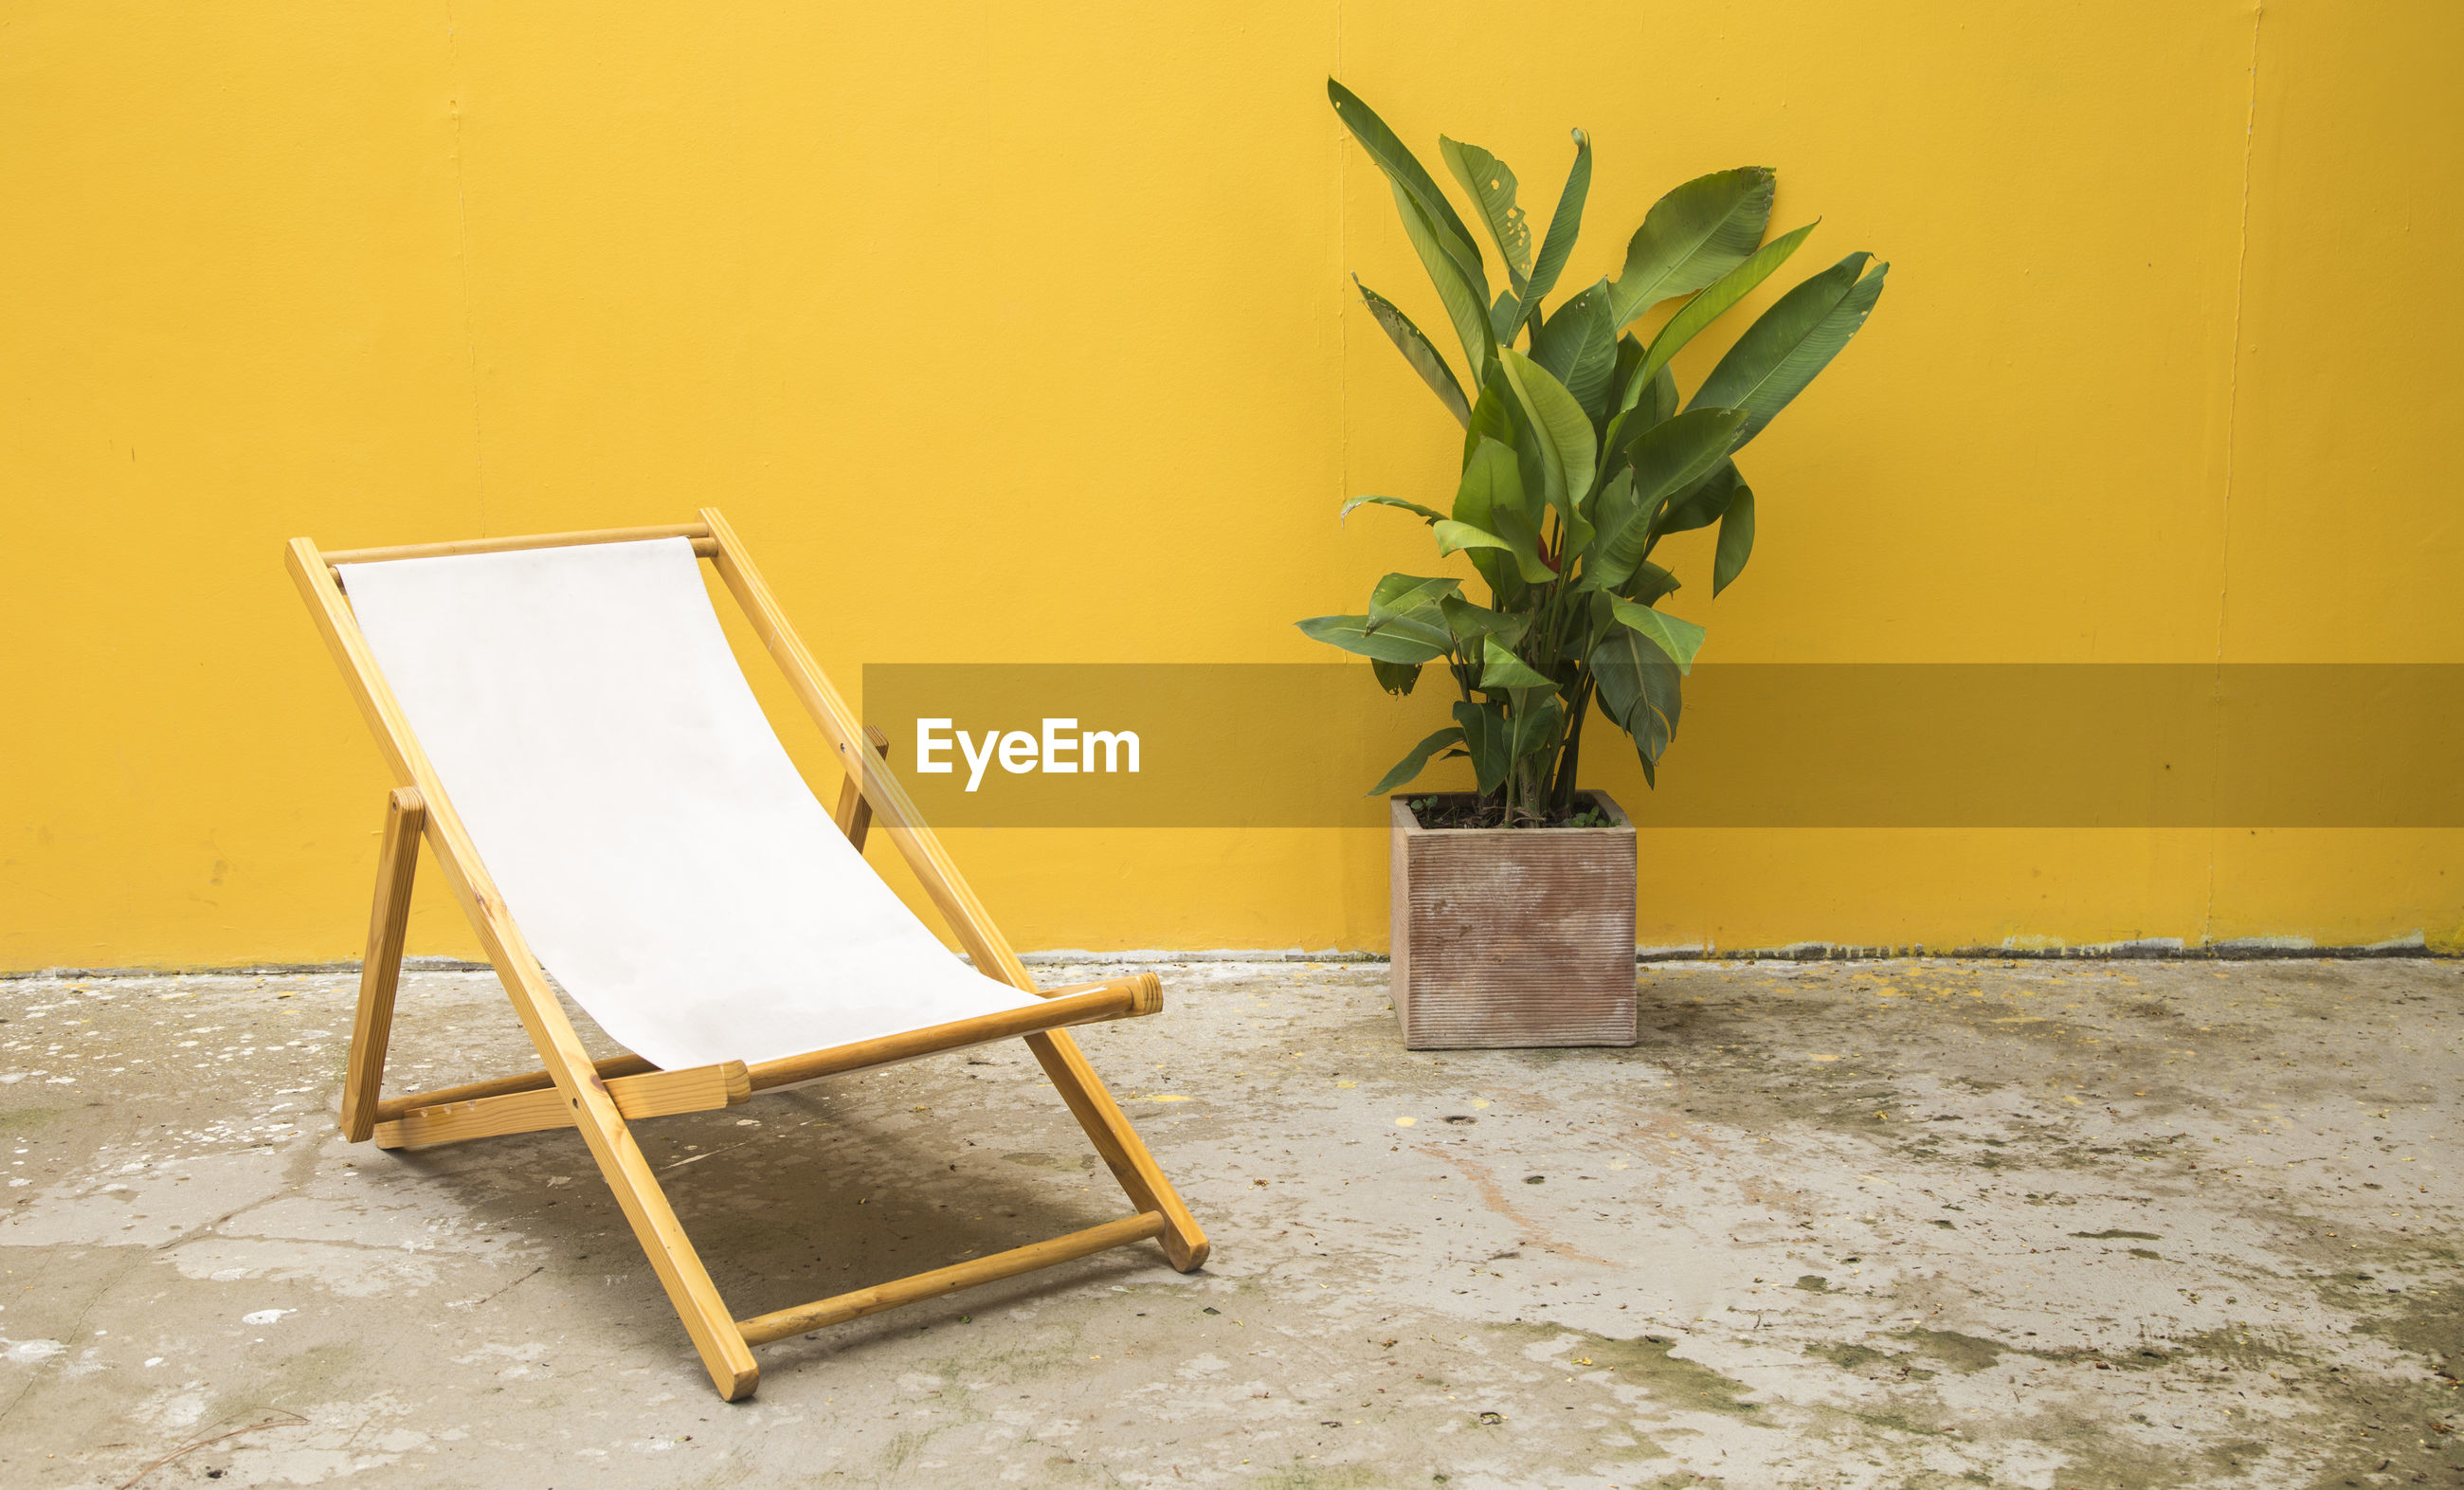 EMPTY CHAIRS AND YELLOW TABLE AGAINST WALL